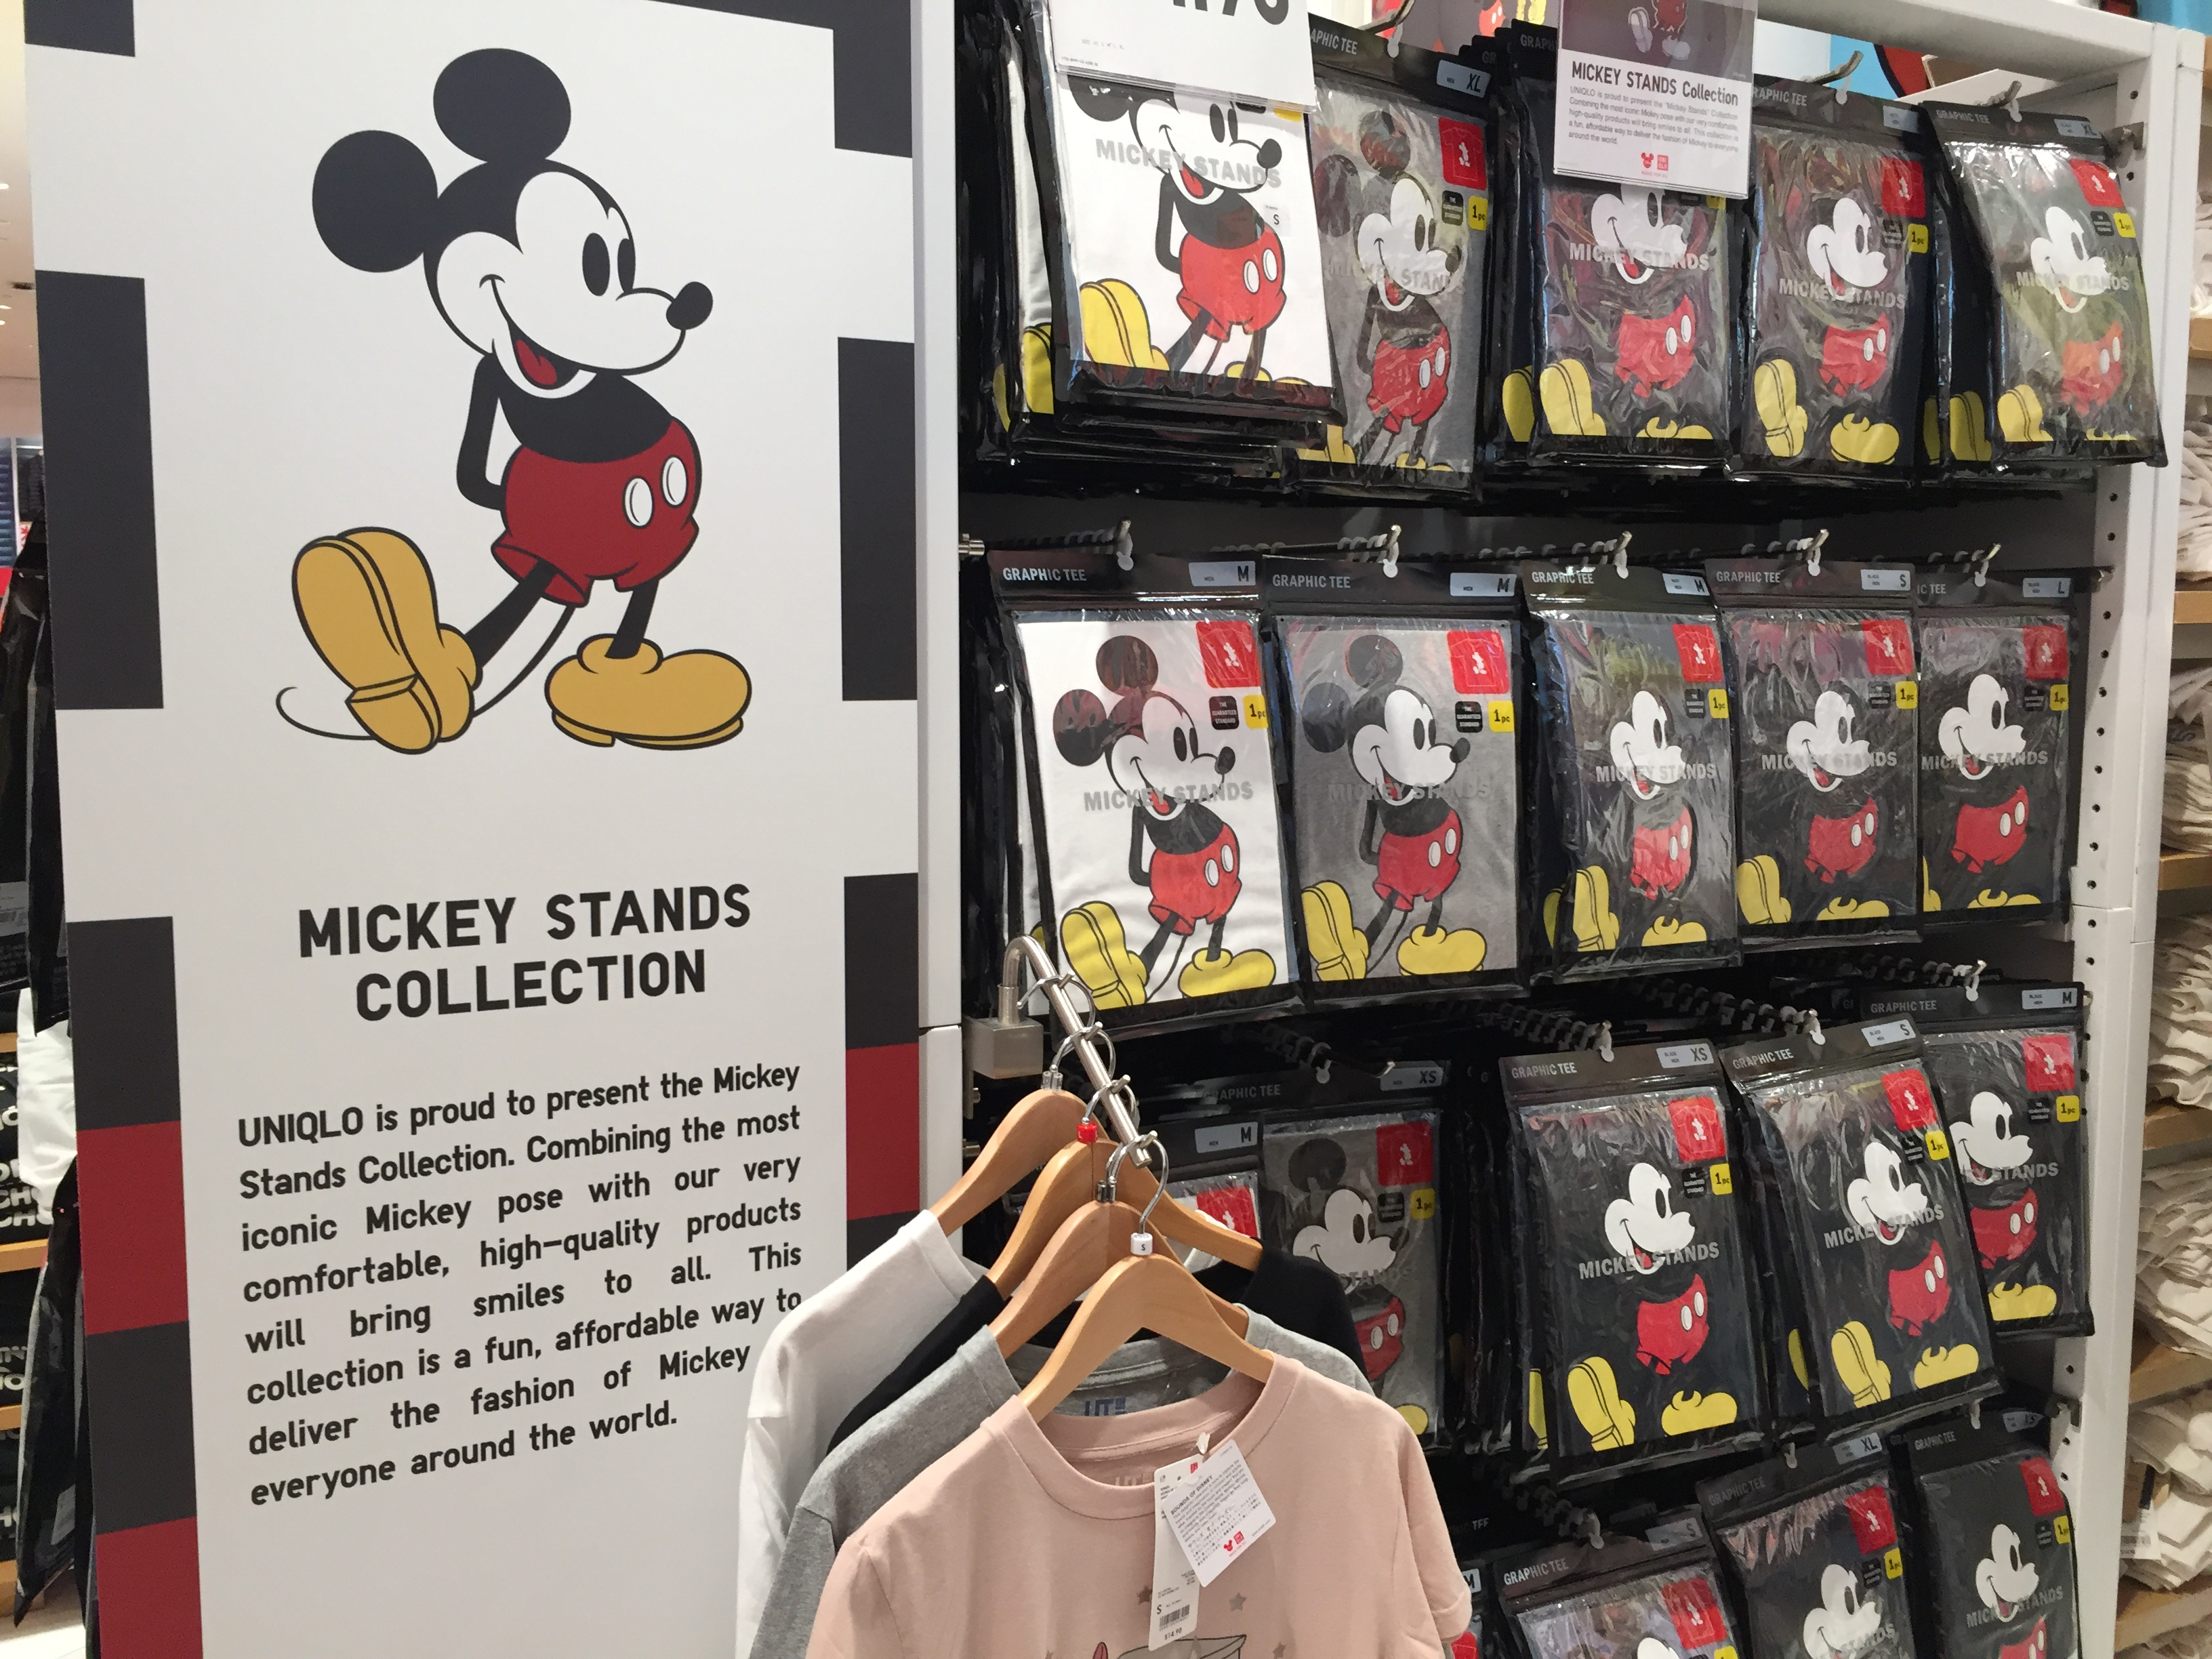 cd73d4610 Mickey Stands is an example of a Uniqlo collection with a classic Disney  spin. Photo by Gregg Jacobs.